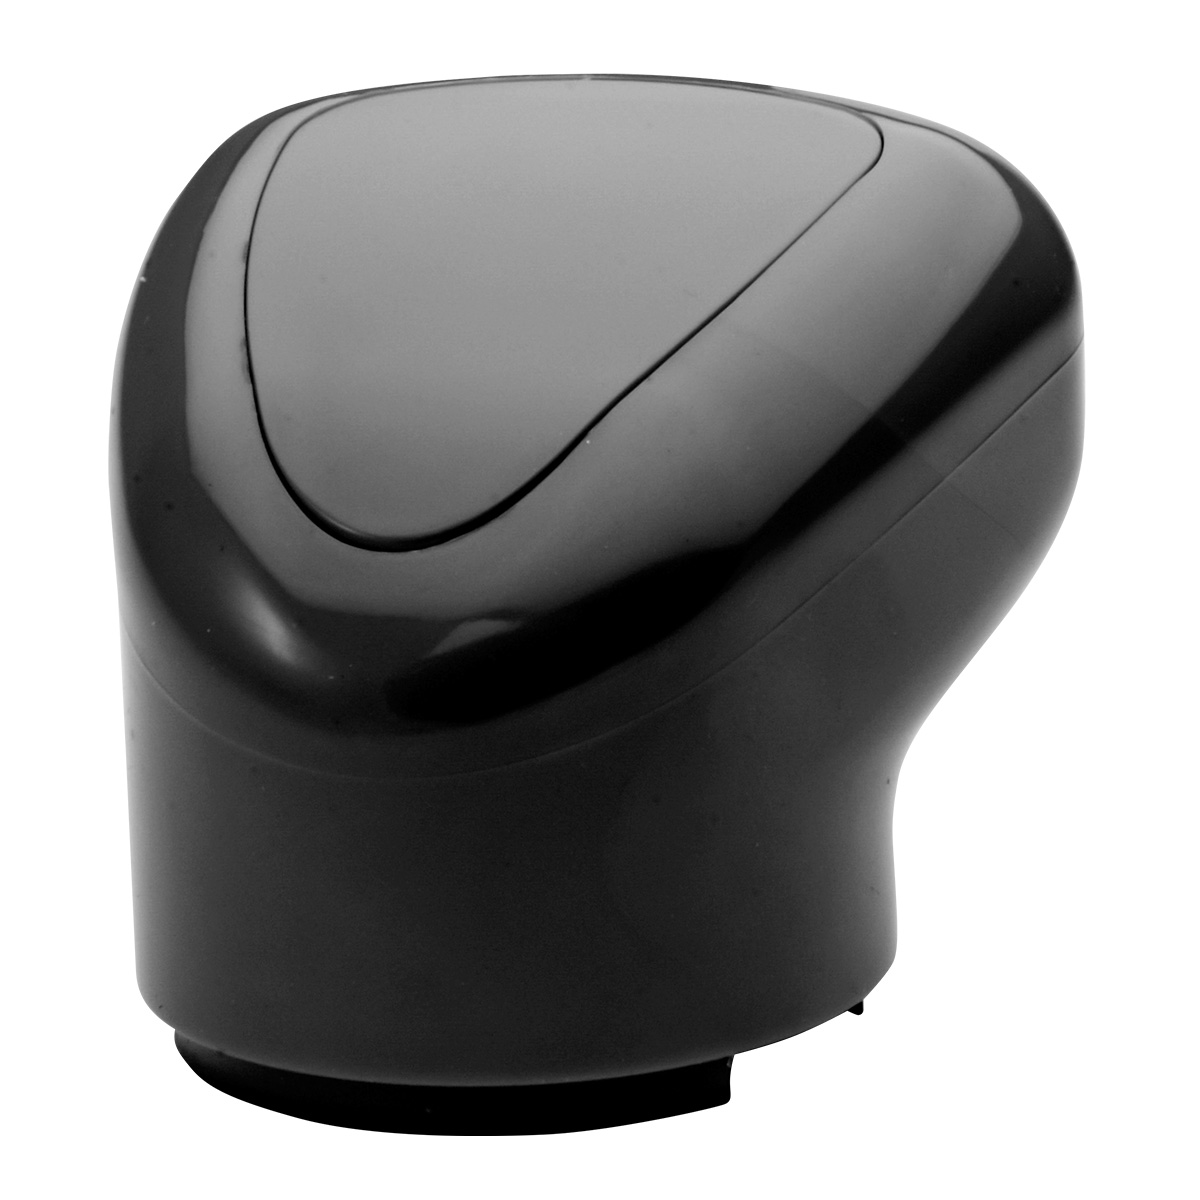 Gear Shift Knob - Black